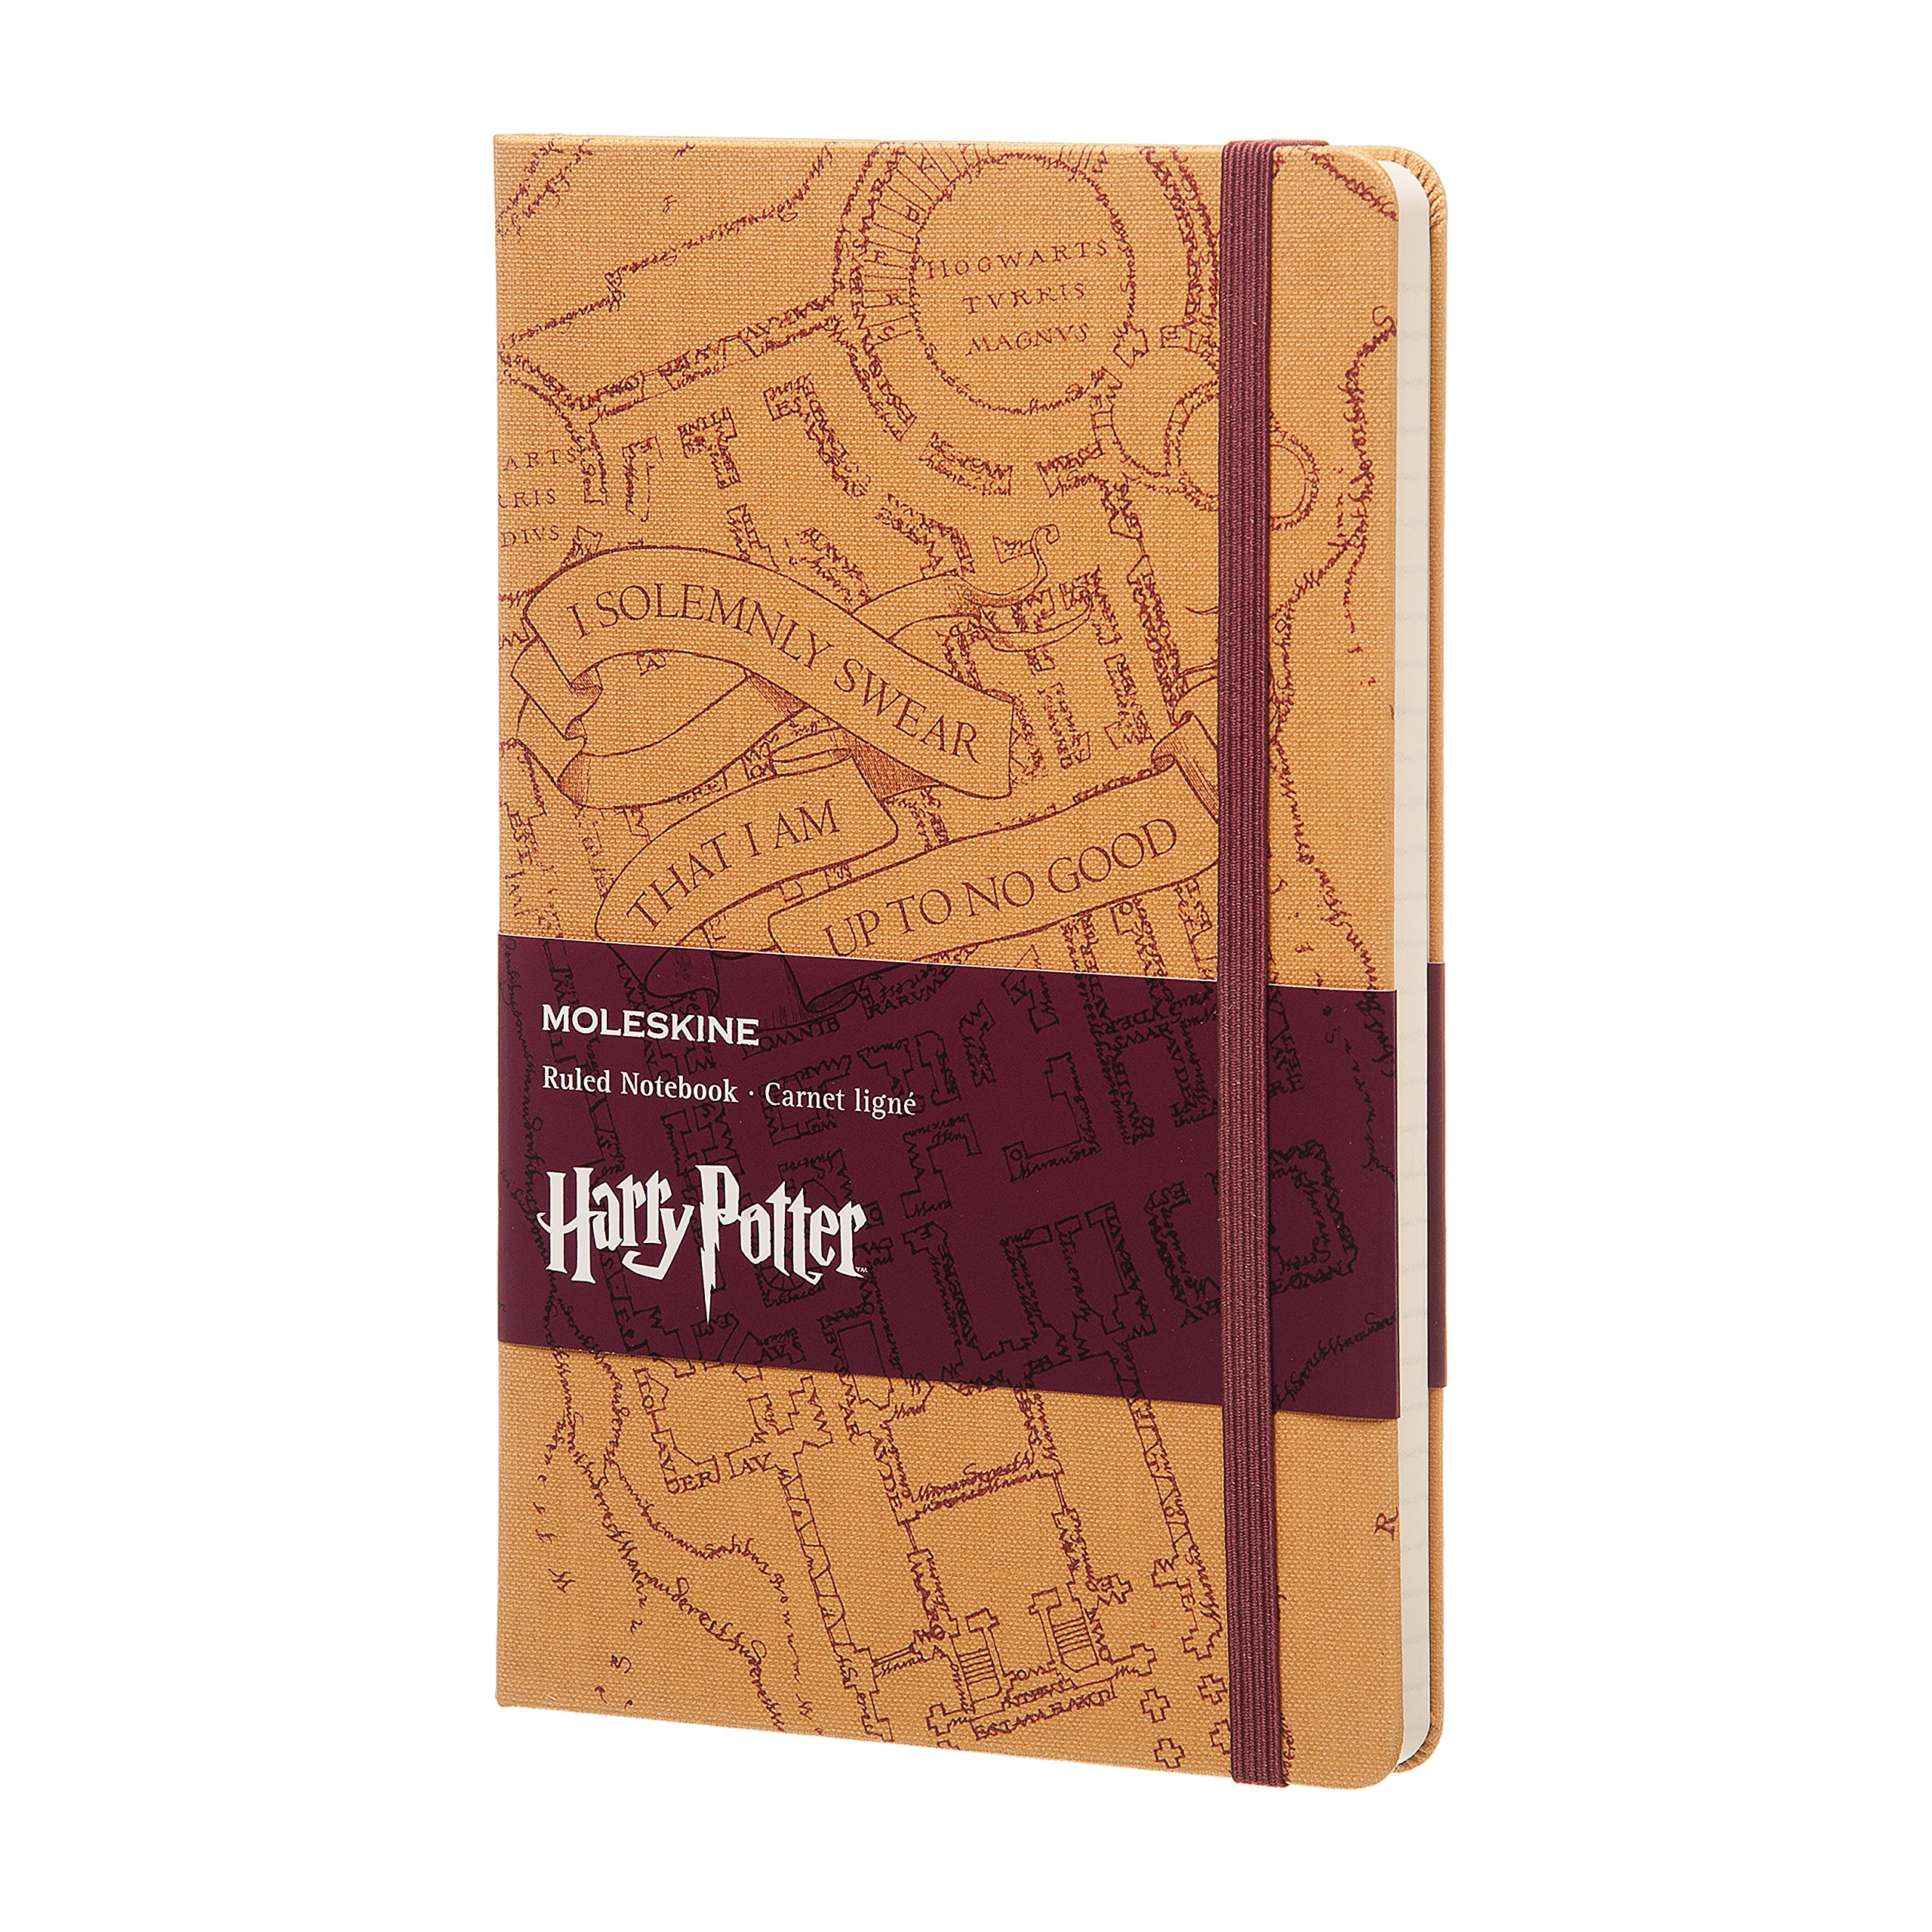 Moleskine Limited Edition Harry Potter Notebook, Hard Cover, Large (5'' x 8.25'') Ruled/Lined